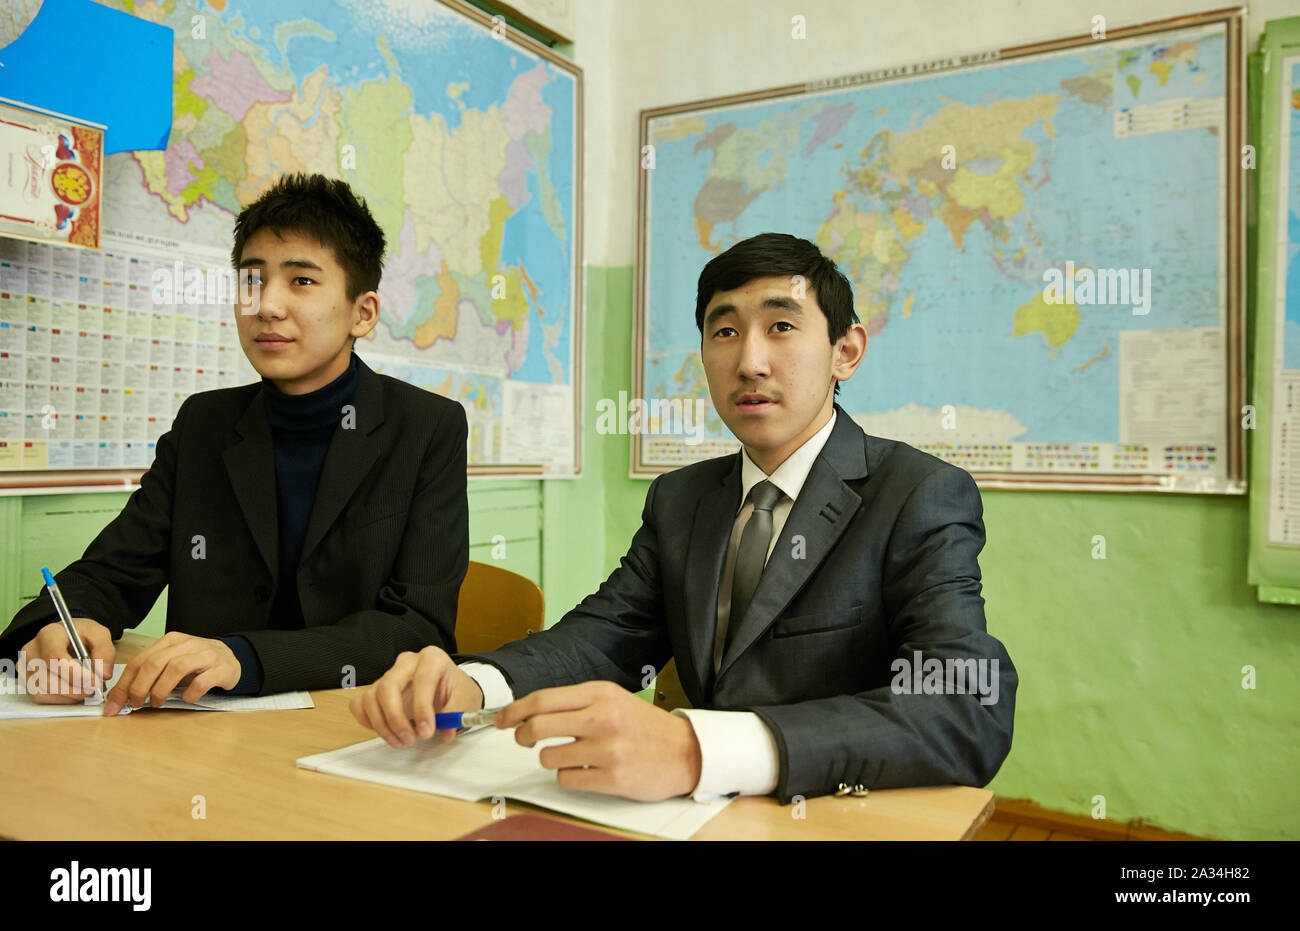 Russia Yakutsk School in a village Uzoktemetsy  Boys well dressed 3-02-2013 photo: Jaco Klamer Stock Photo